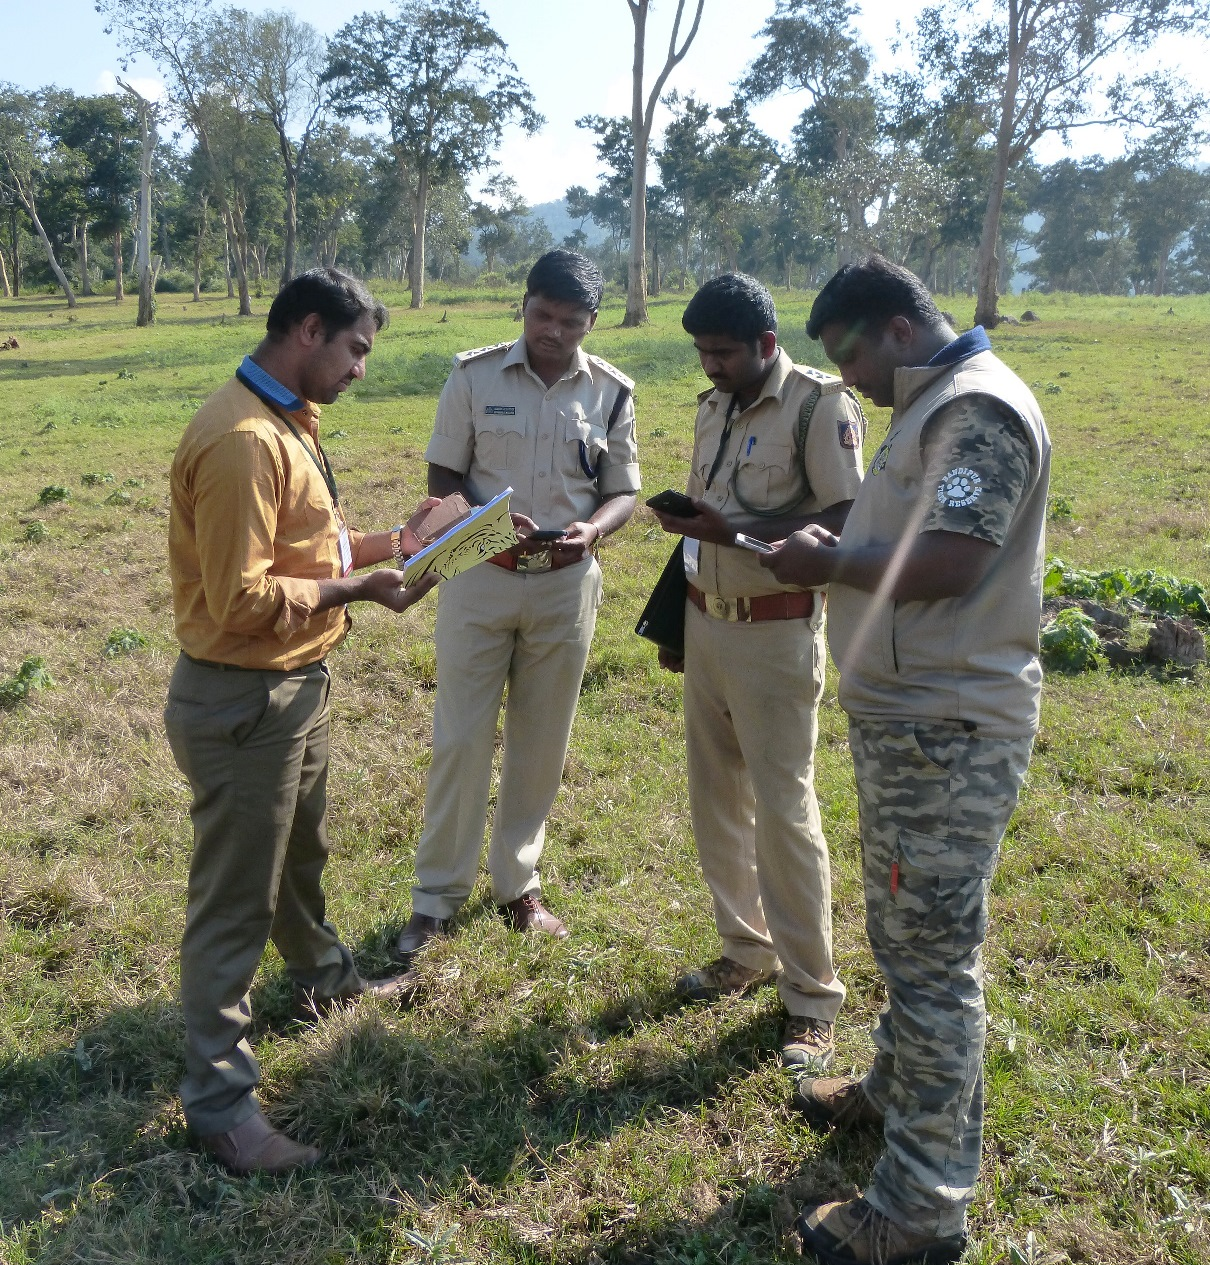 Forest officials conduct a training exercise in M-STrIPES.